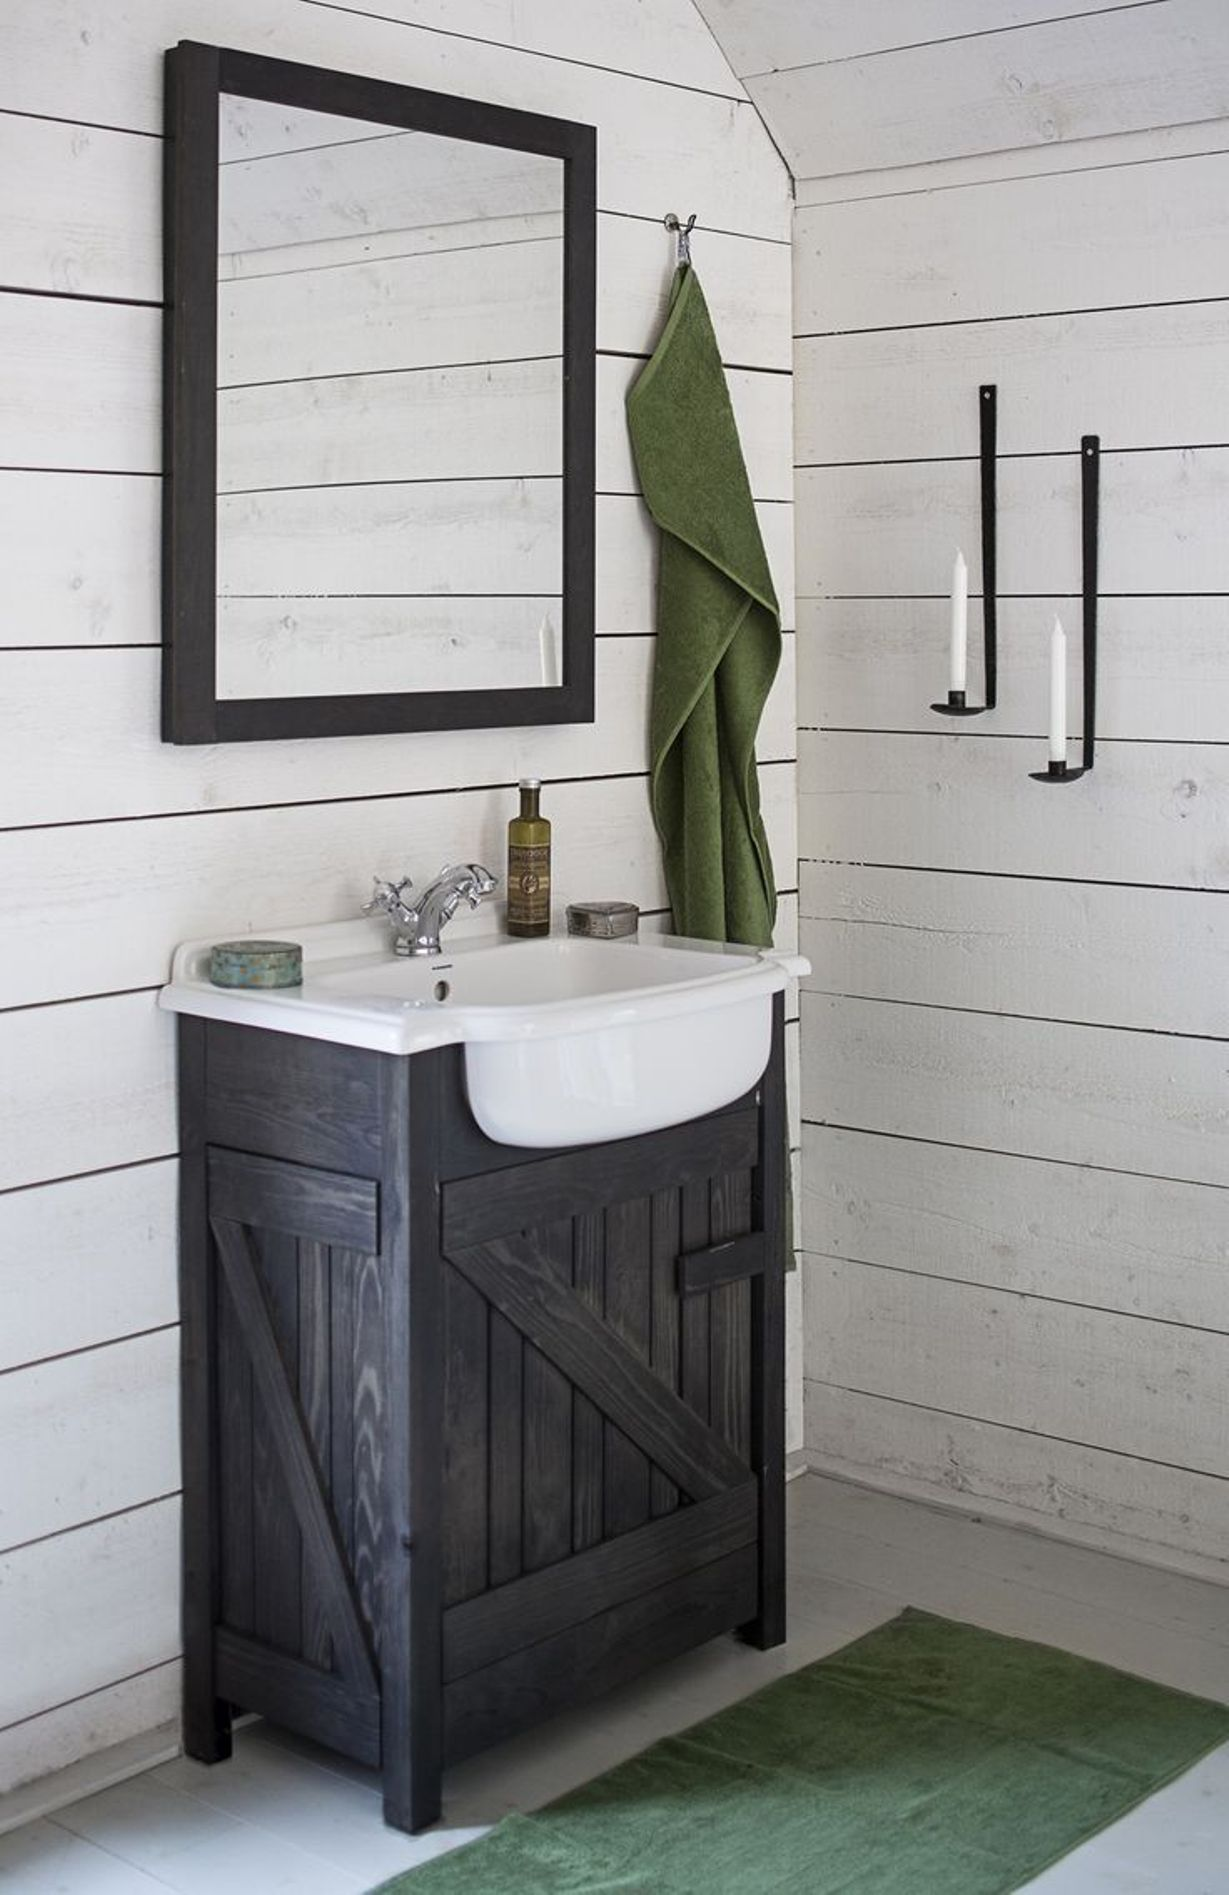 Genial Bathroom , Elegant Rustic Bathroom Vanities : Small Rustic Bathroom Vanities  With Black Color And White